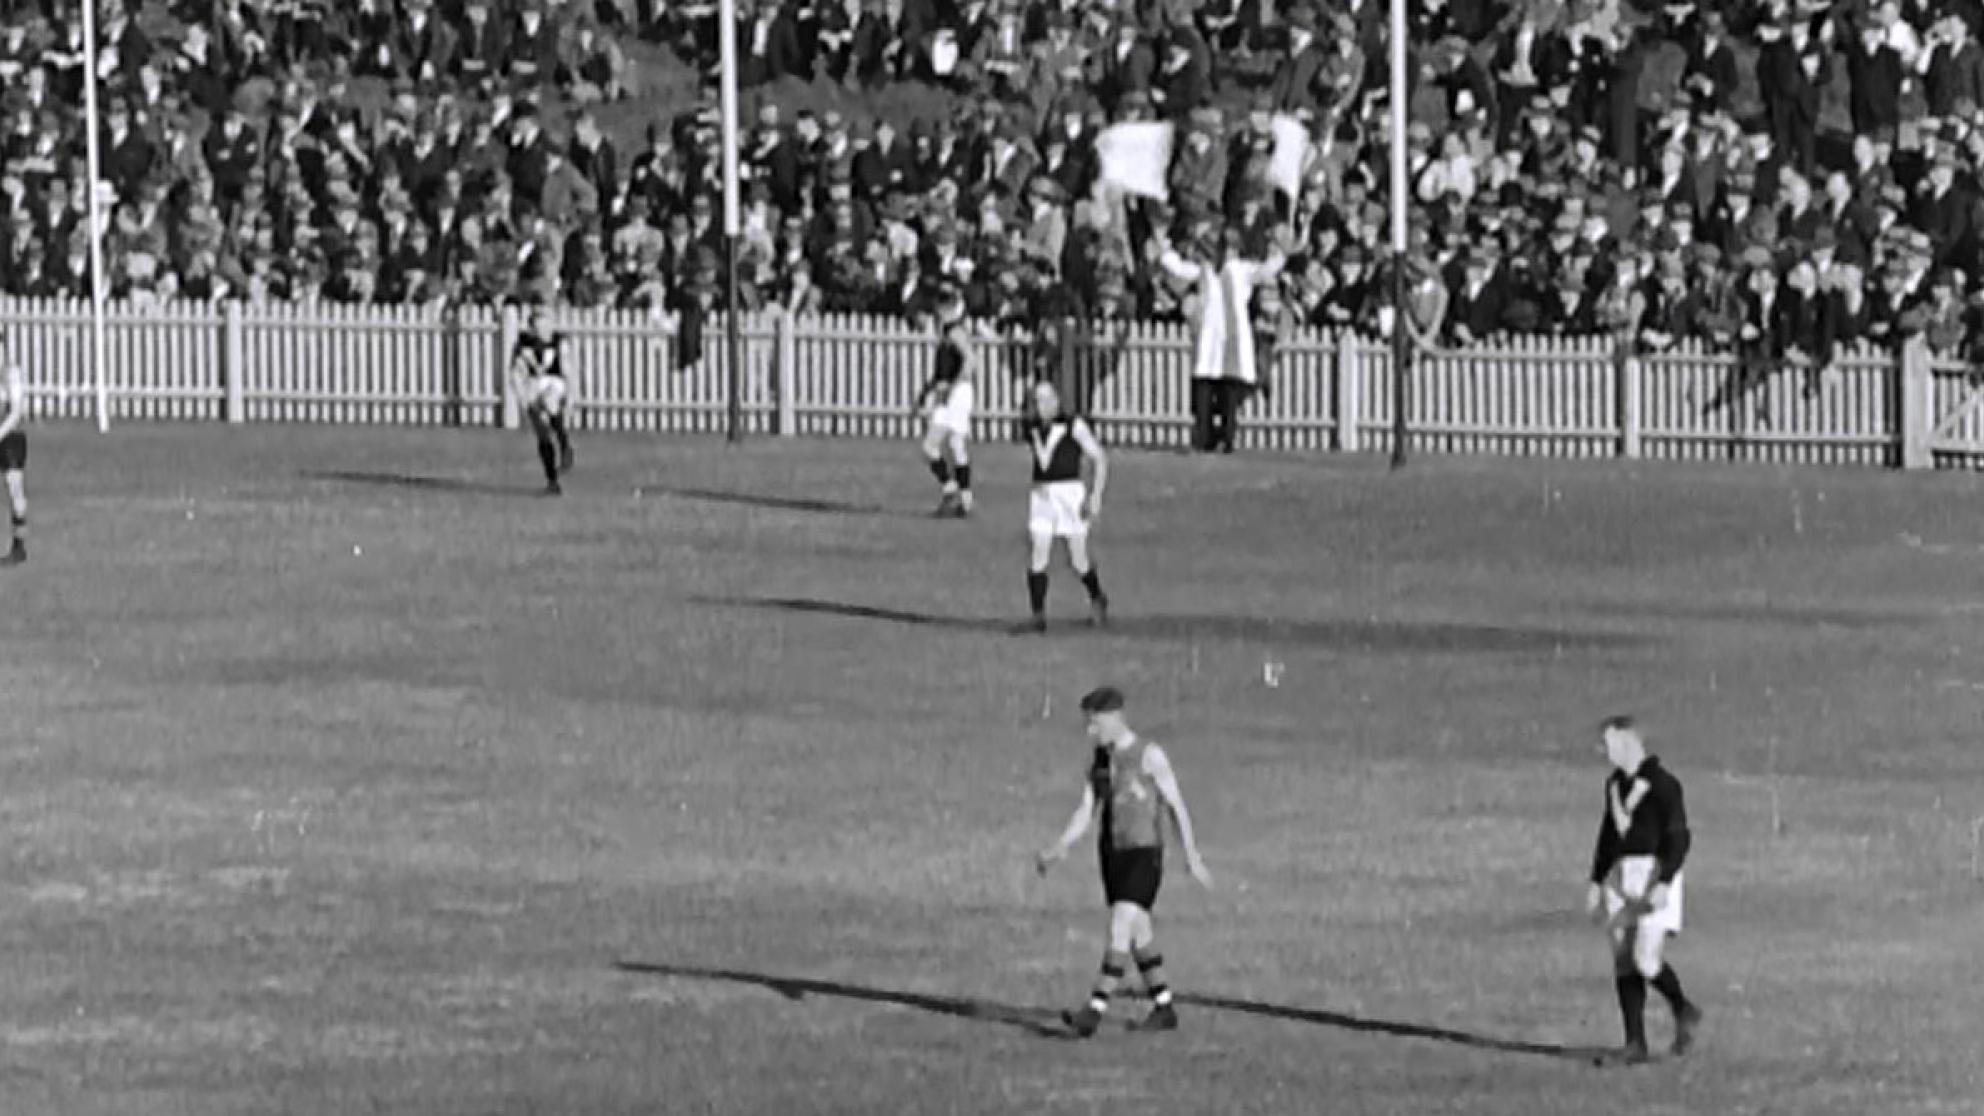 Black and white frame capture of the AFL goal umpire waving two flags signalling a six point score.